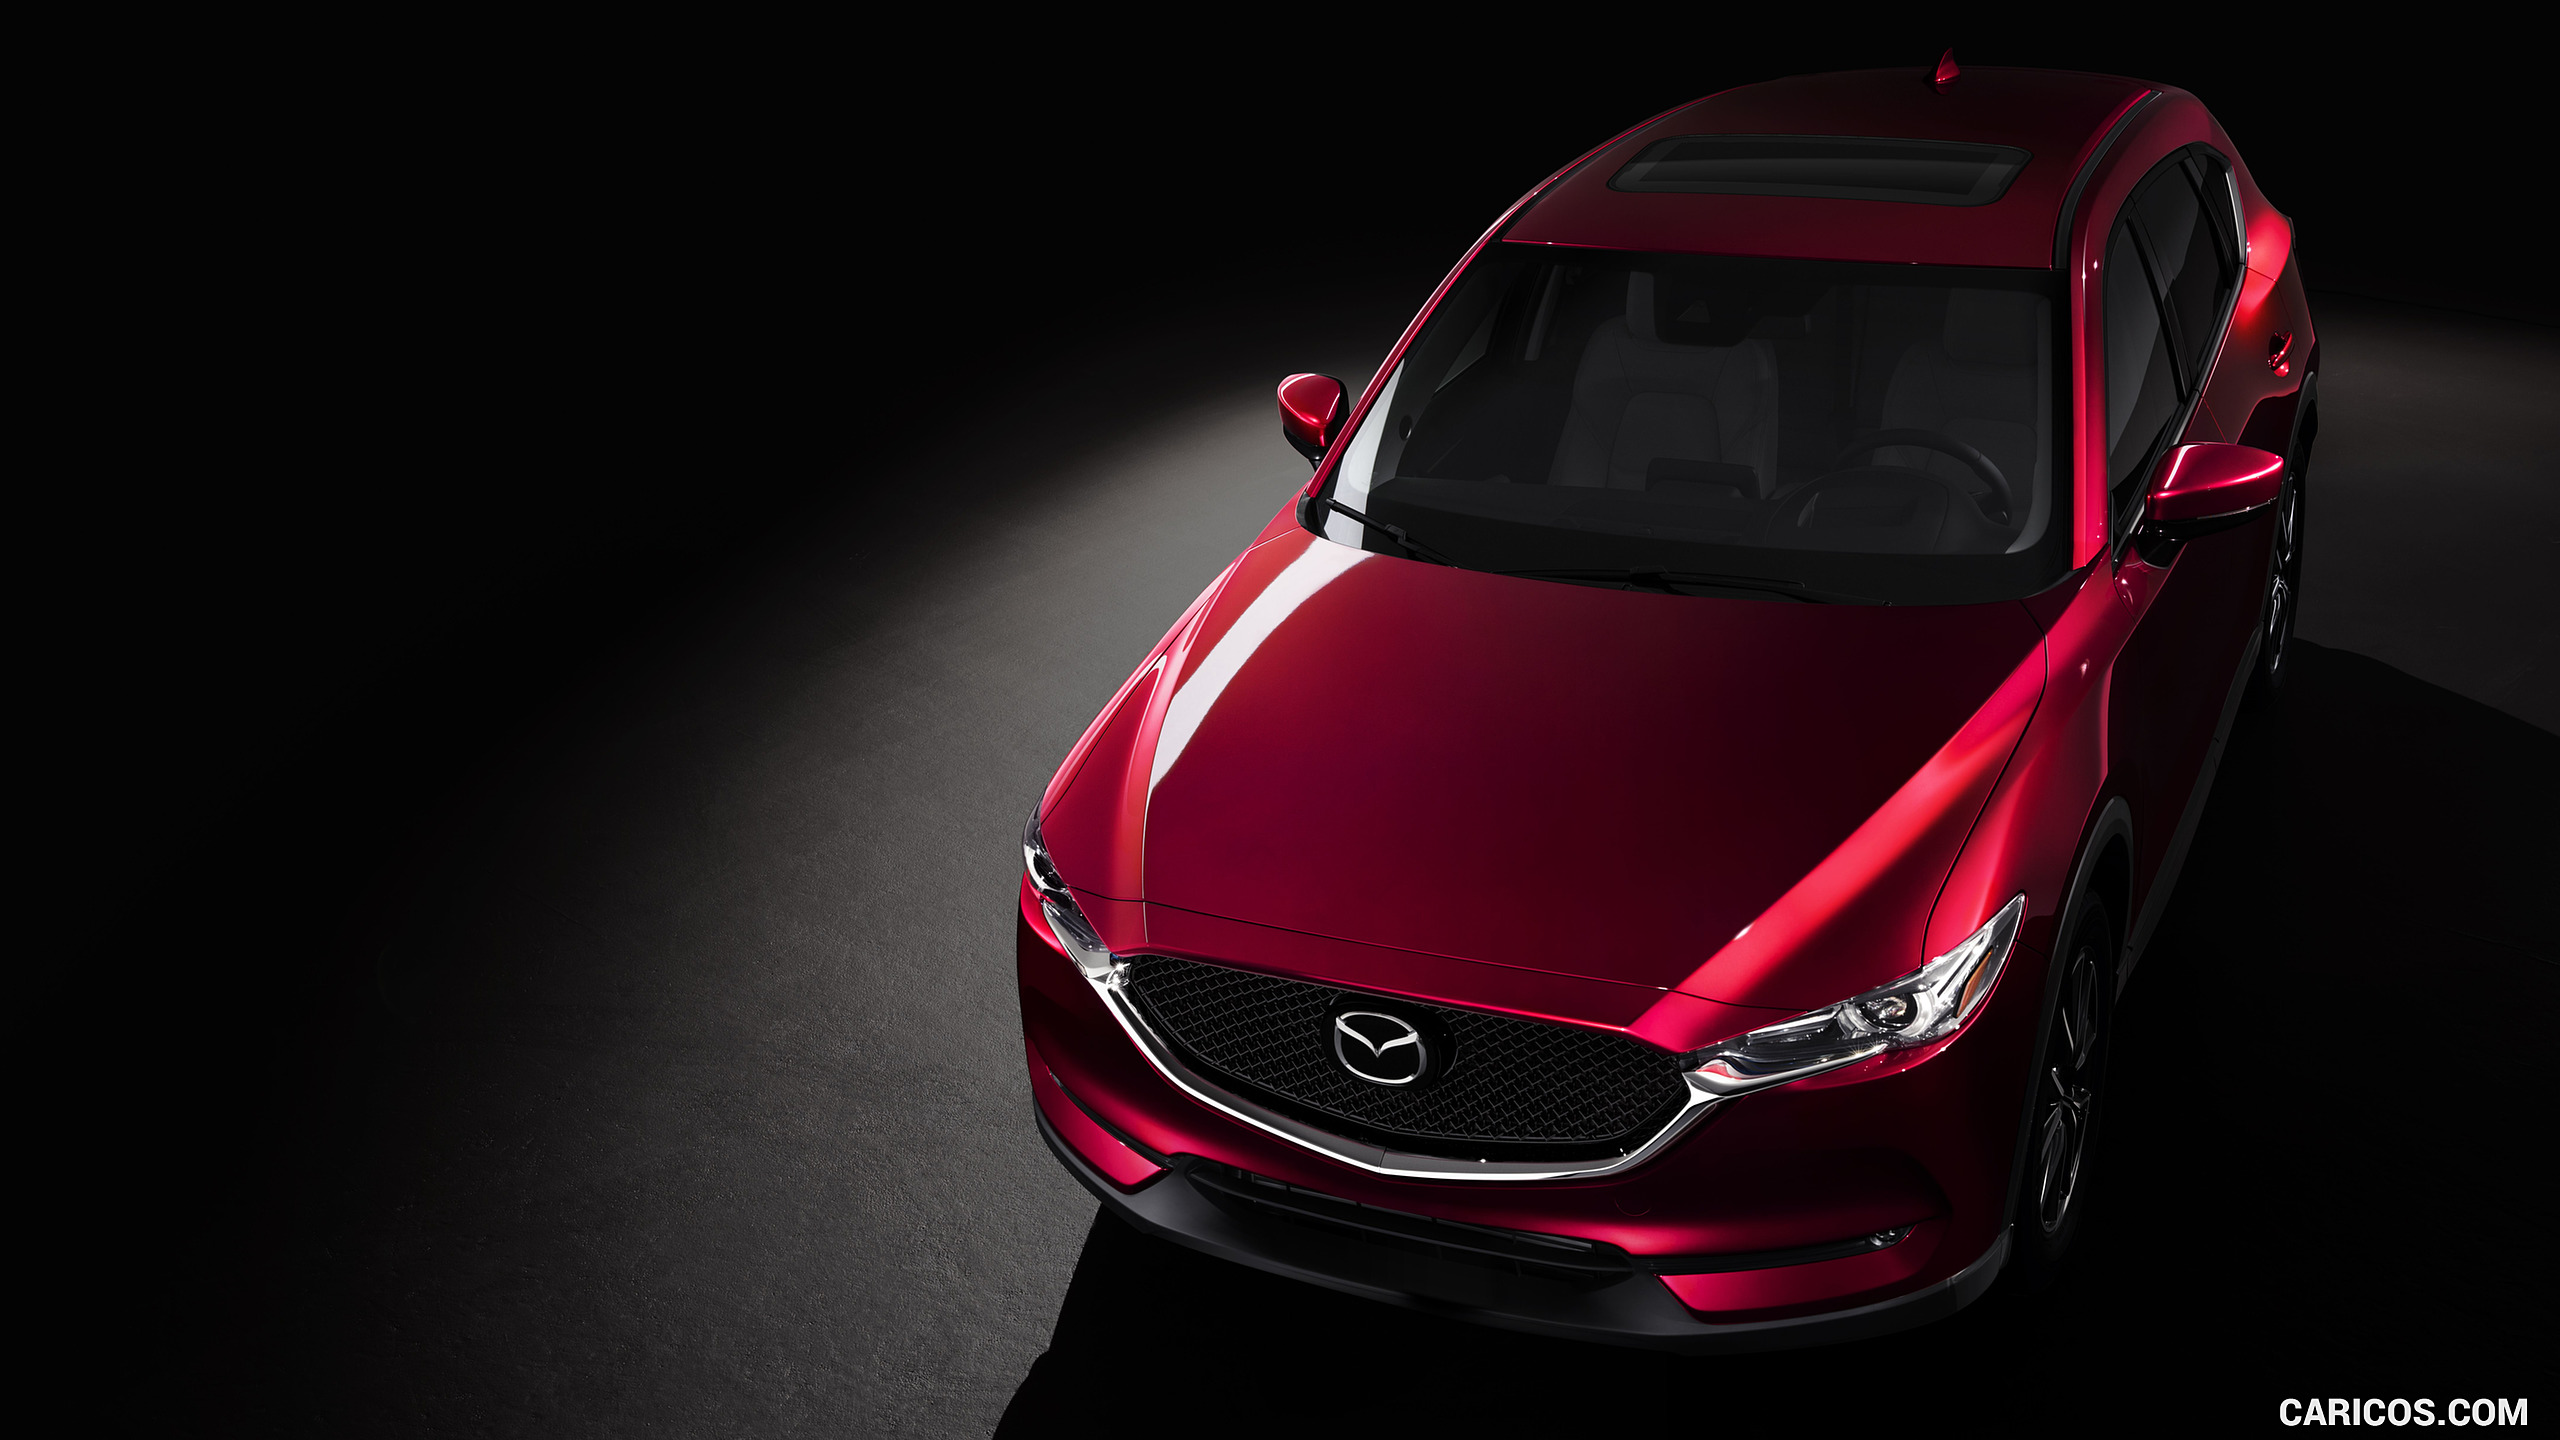 2560x1440 - Mazda Wallpapers 14